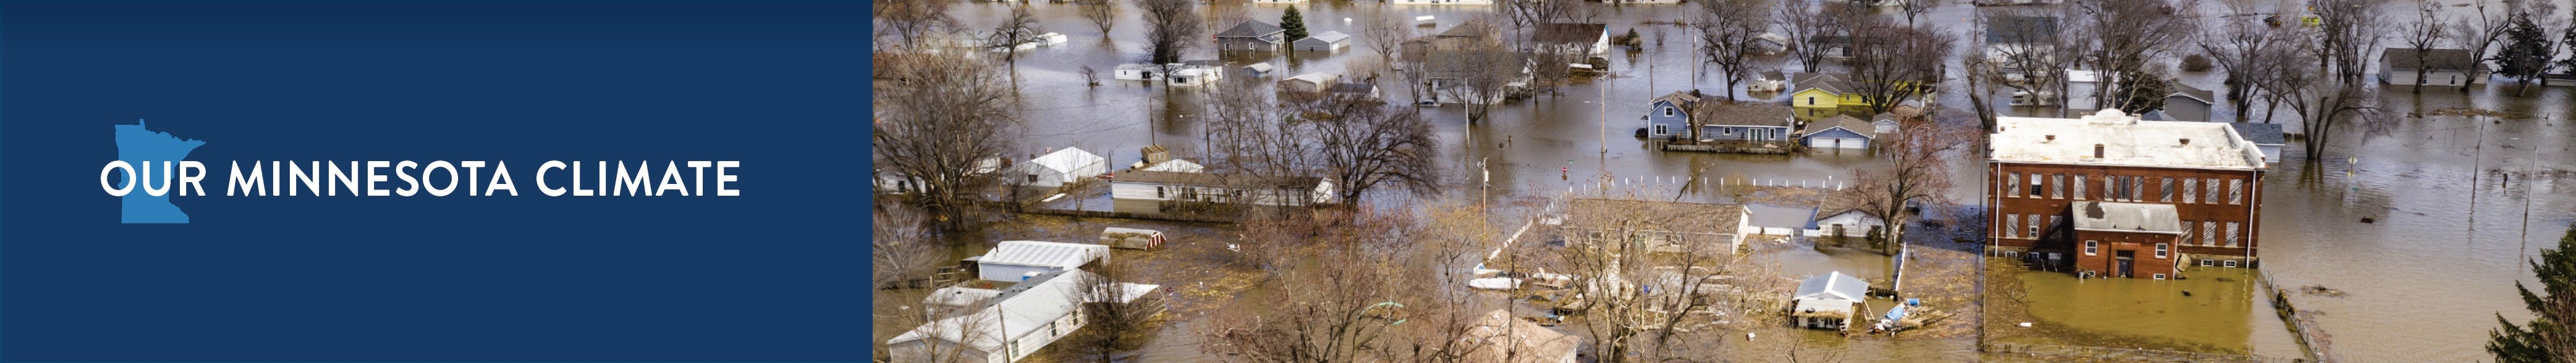 Our Minnesota Climate banner with a photo of a community submerged by flood waters.